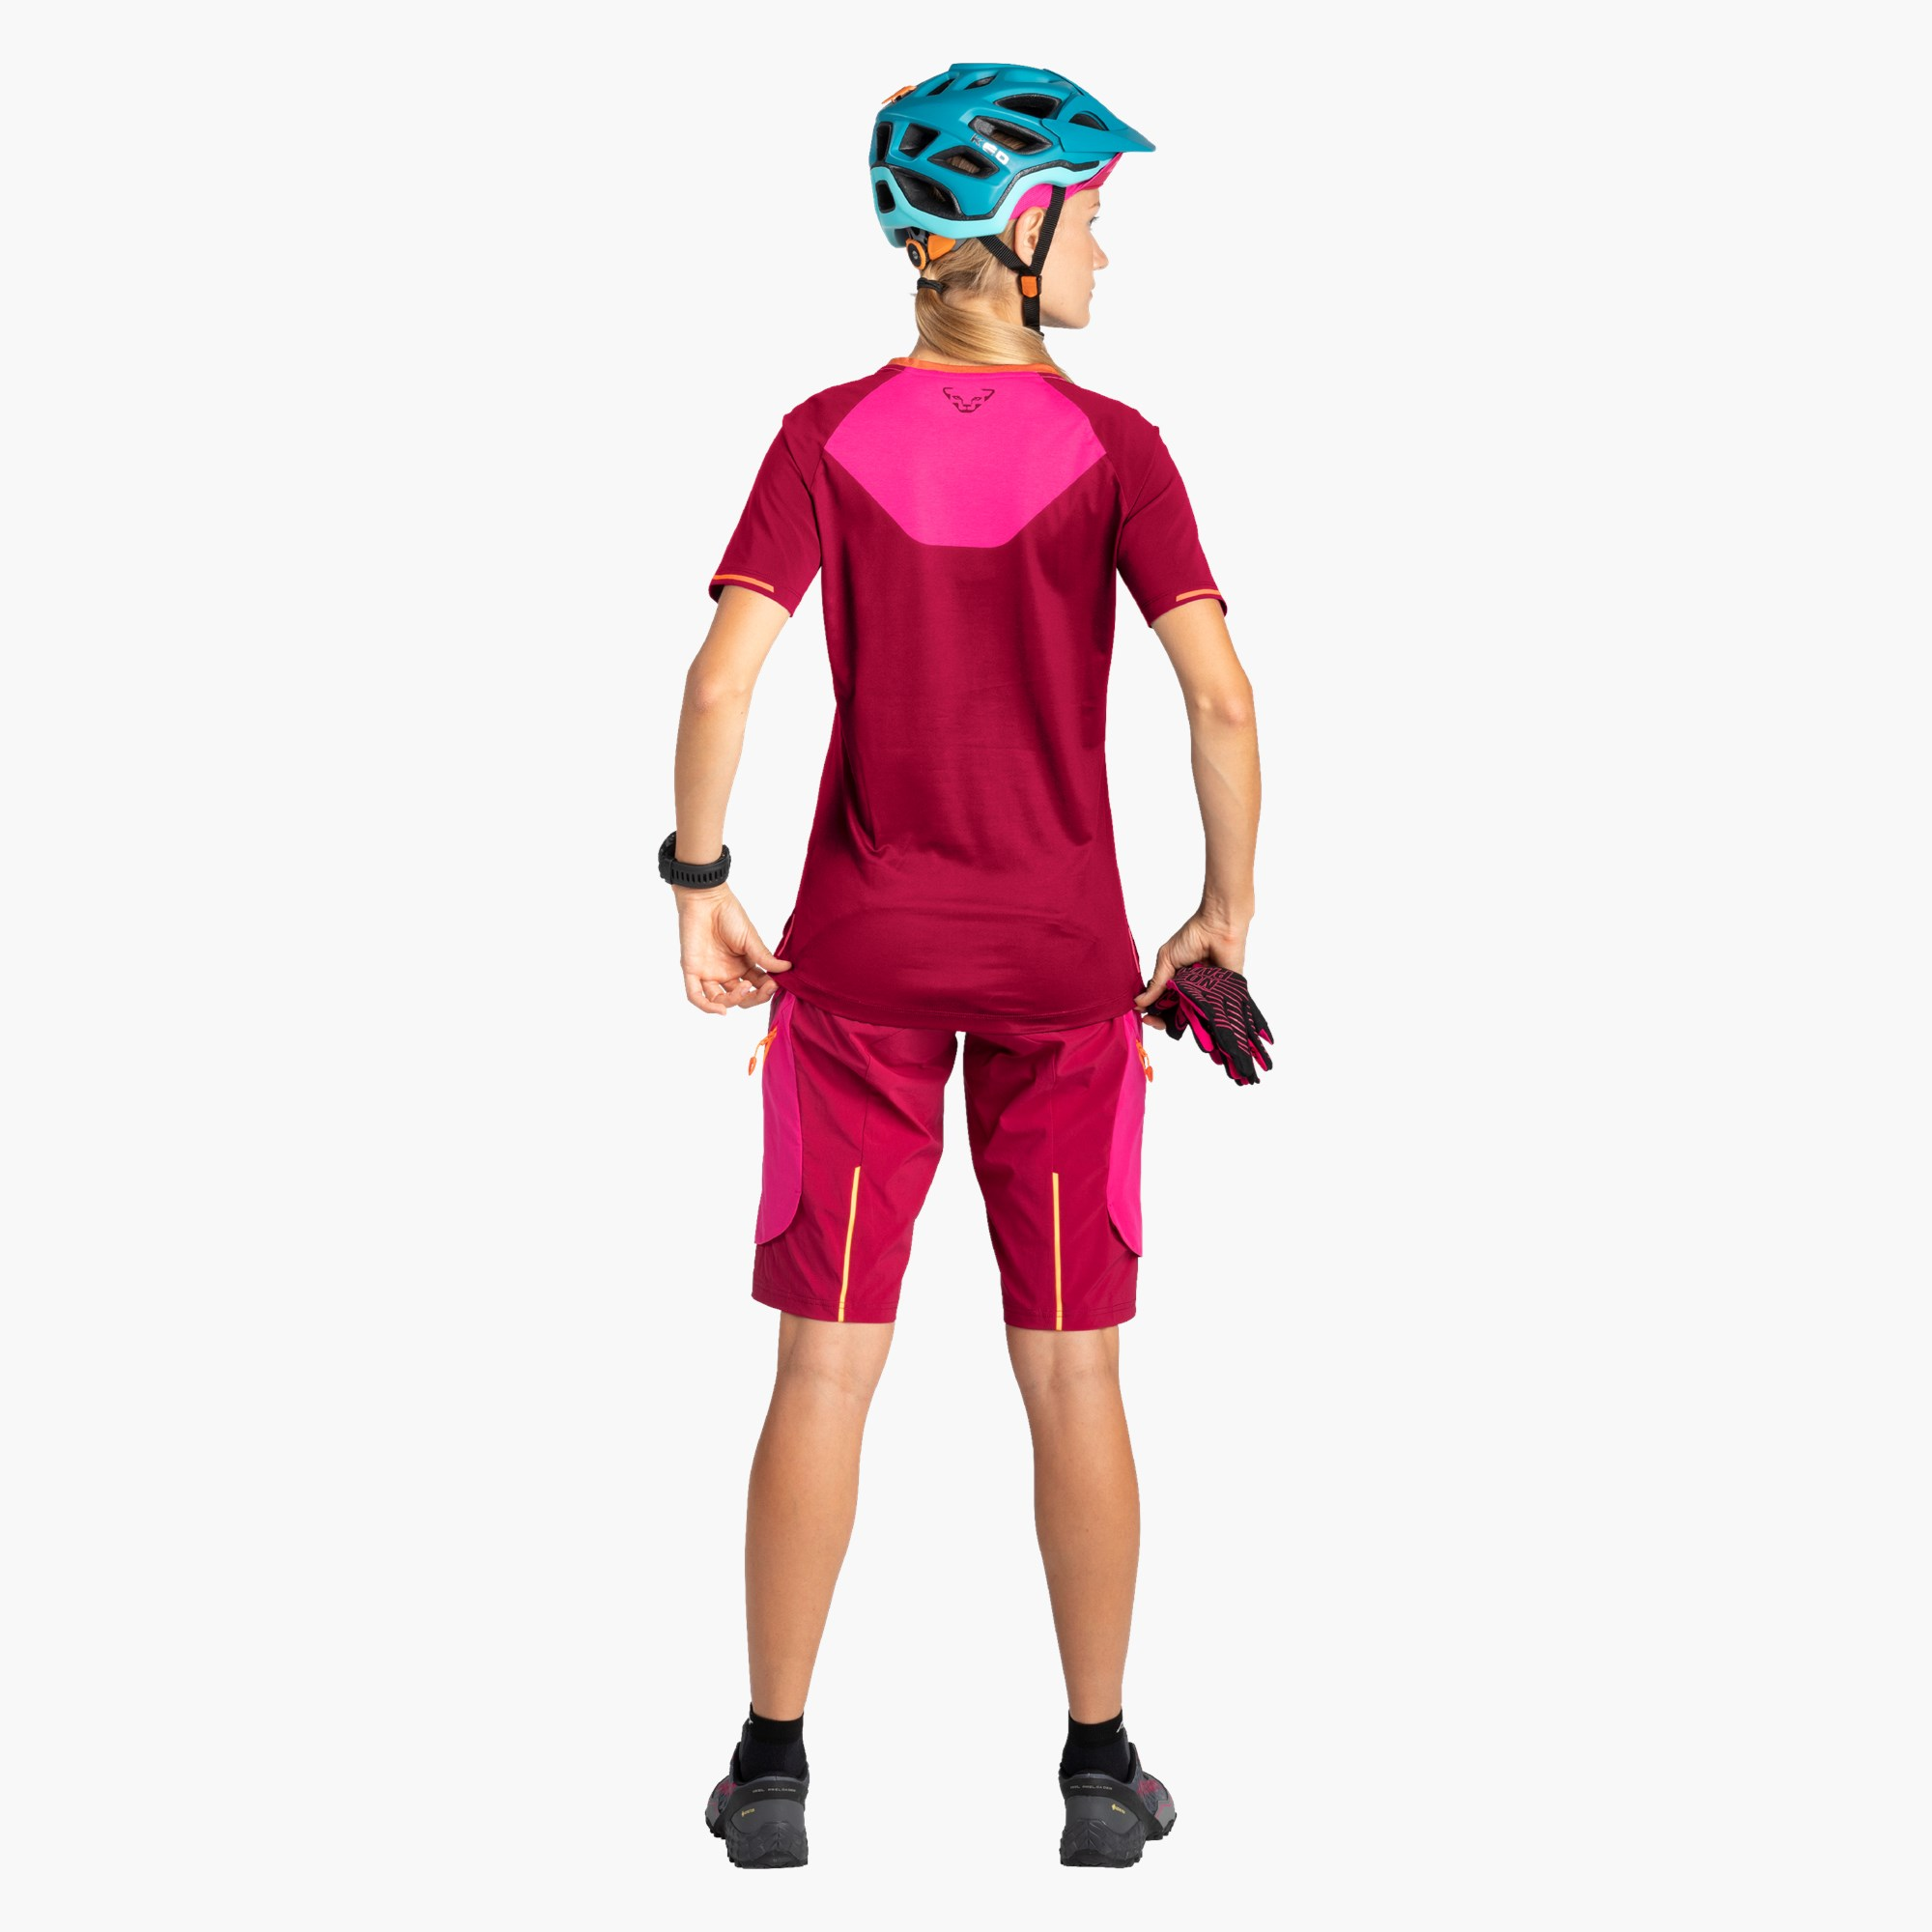 Beet red/6550_6211